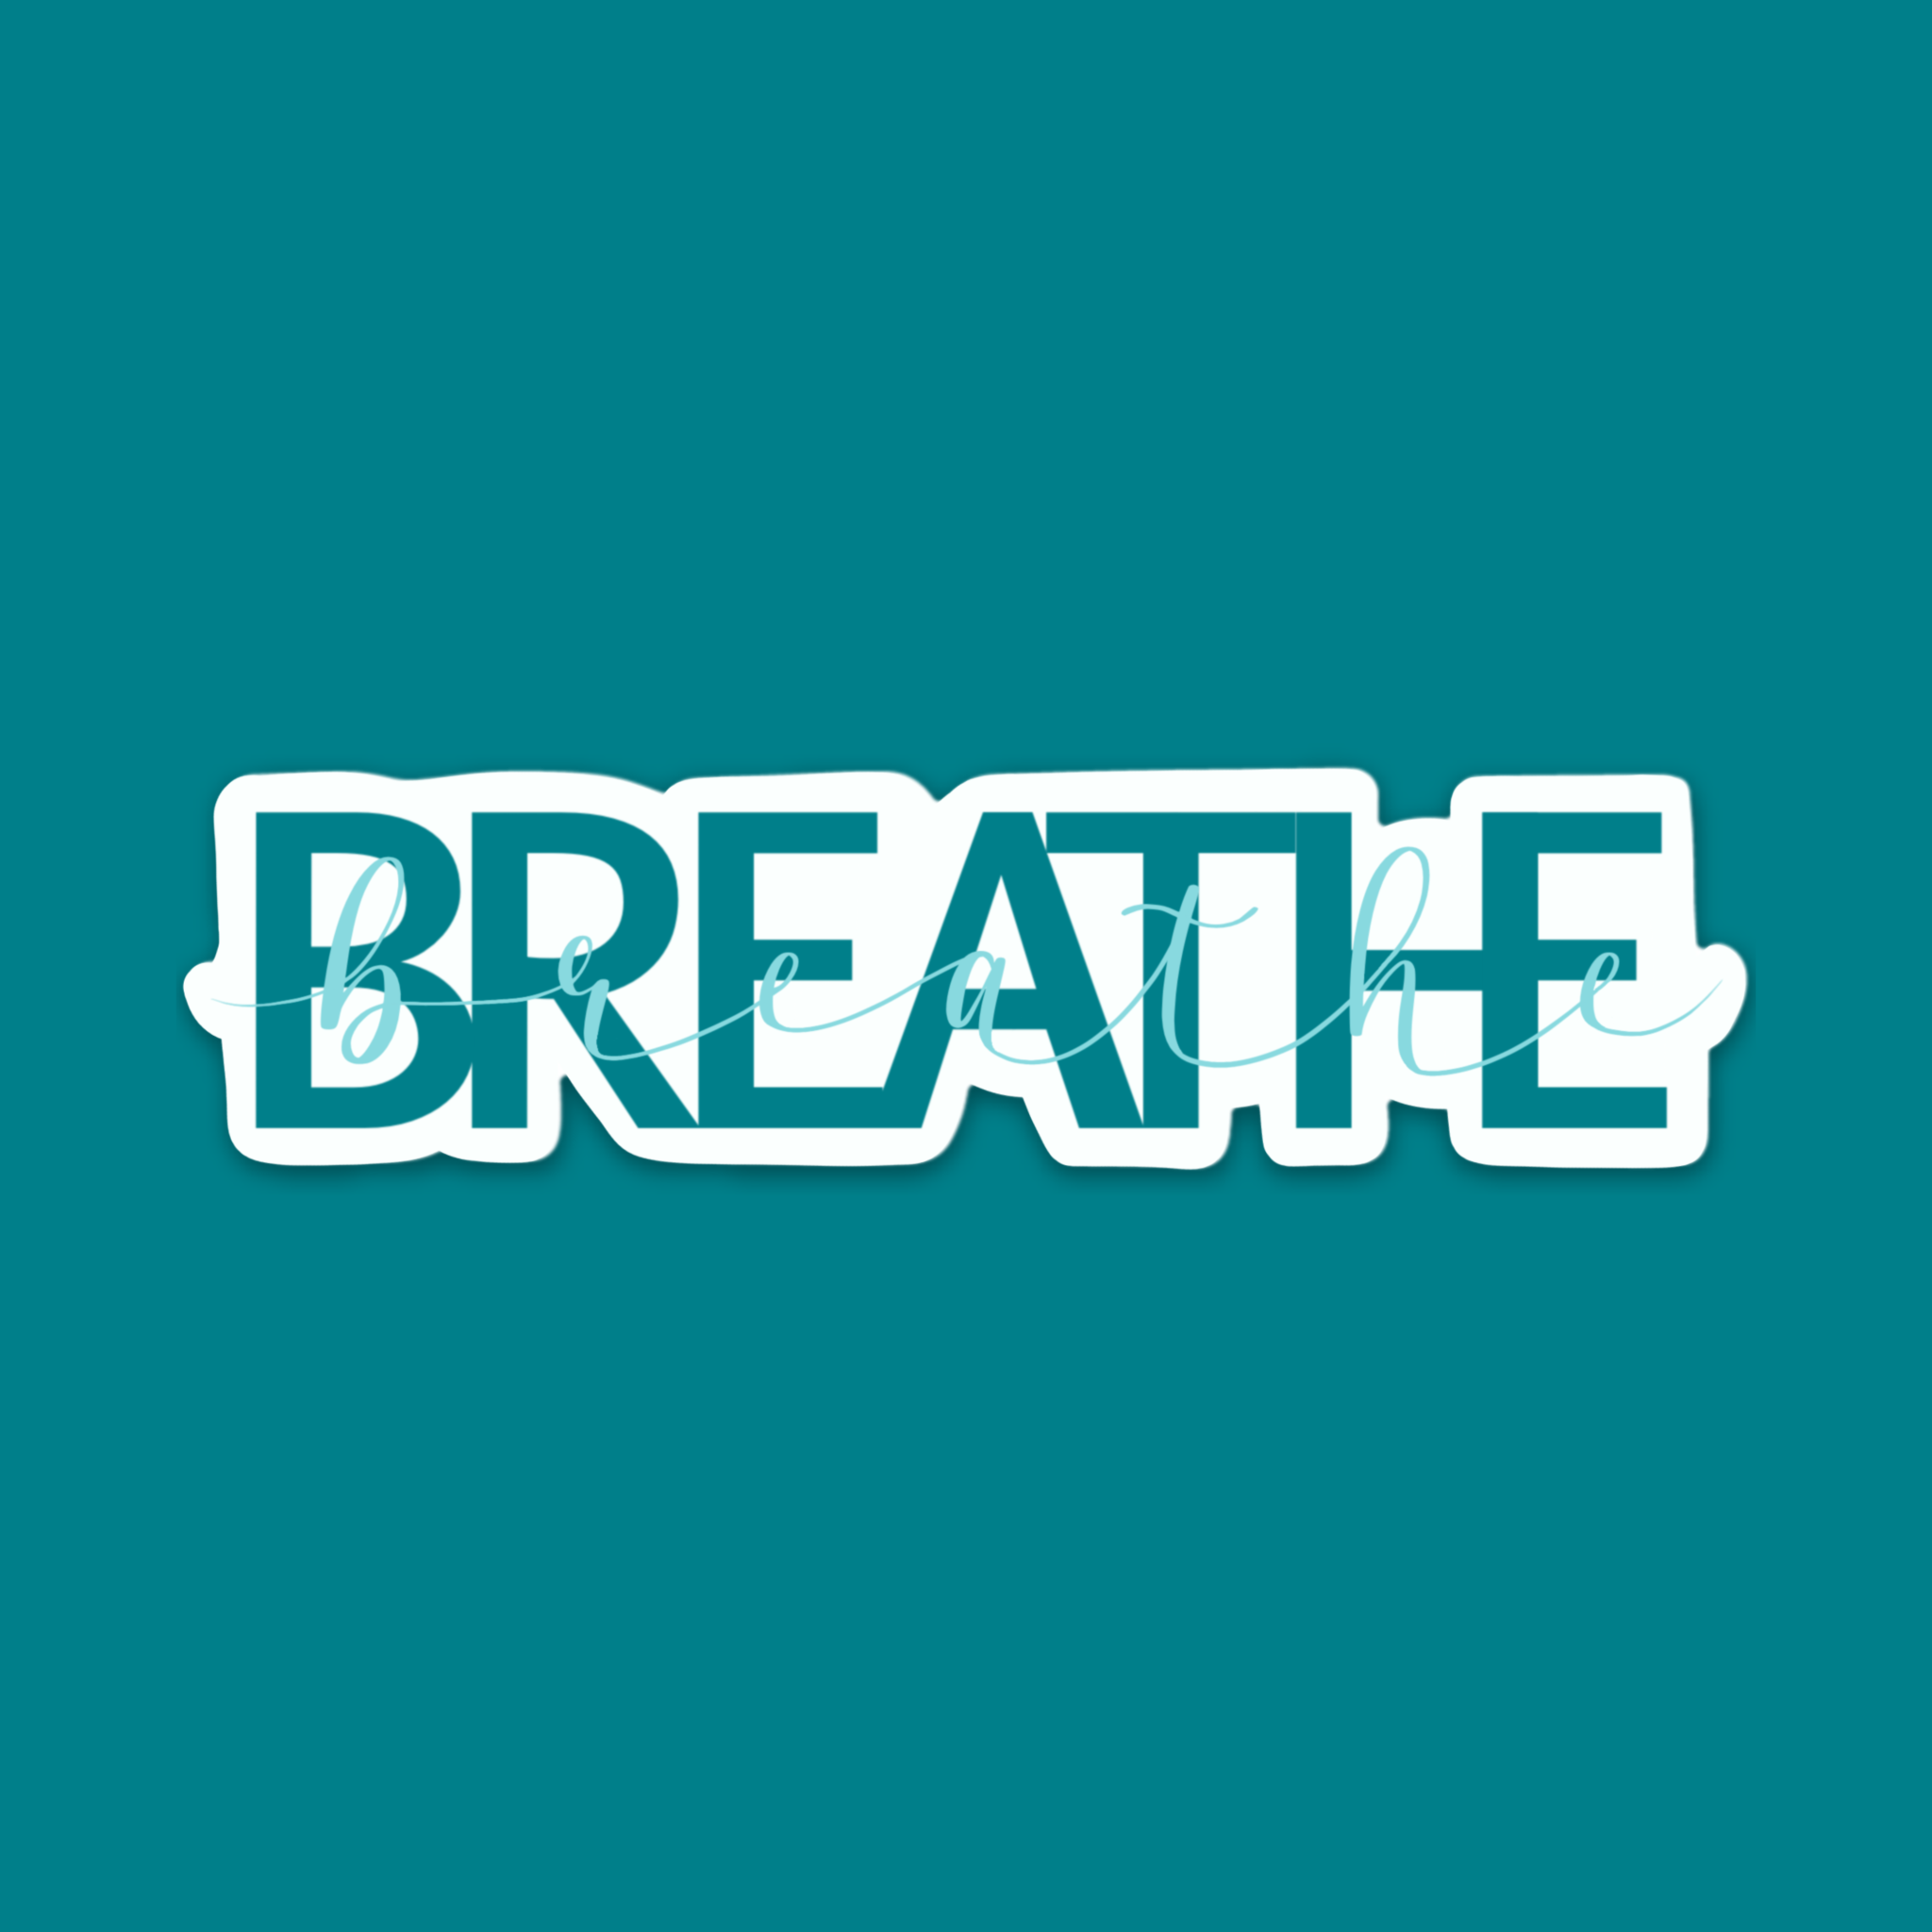 Teal Breathe Text Vinyl Sticker By Vib and Sol Designs